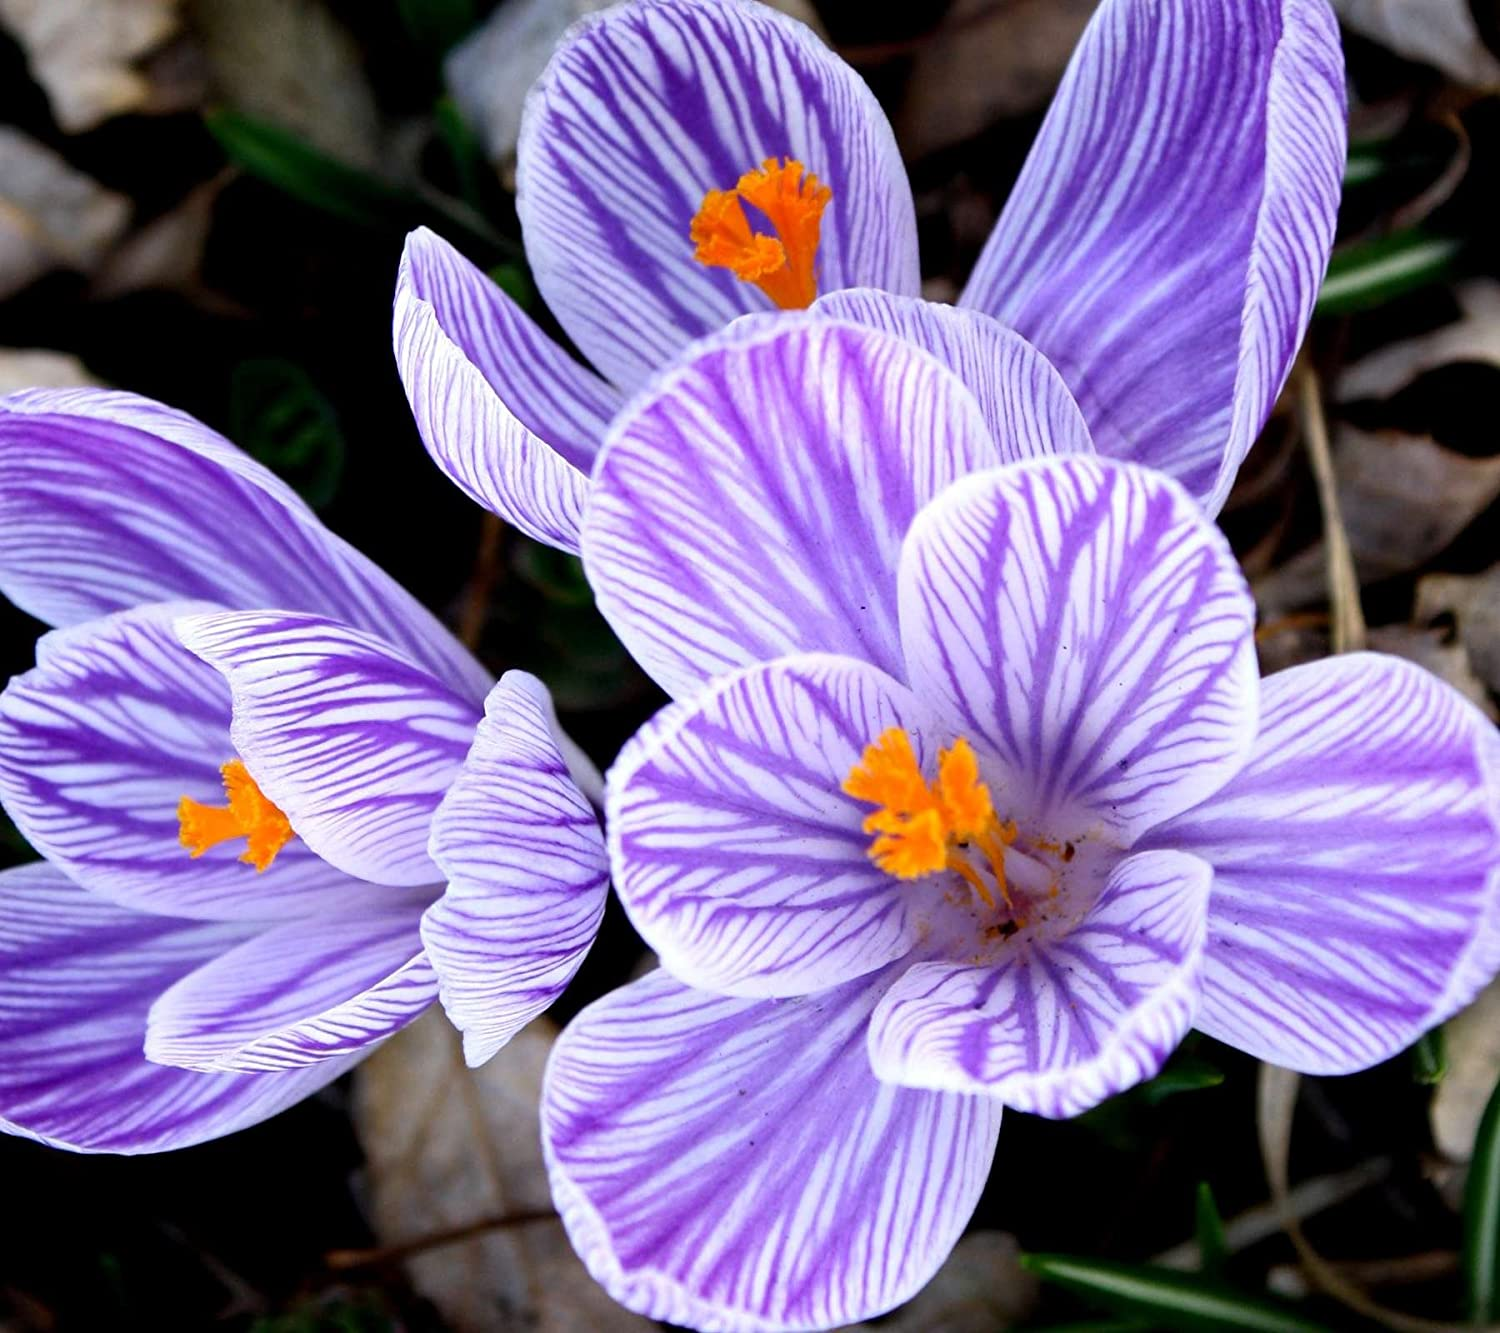 20 Striped Beauty Crocus Bulbs -Spring Bulbs- Plant with Snowdrop-Daffodil-IRIS-ERANTHIS-BEE Friendly JULIA'S GARDEN